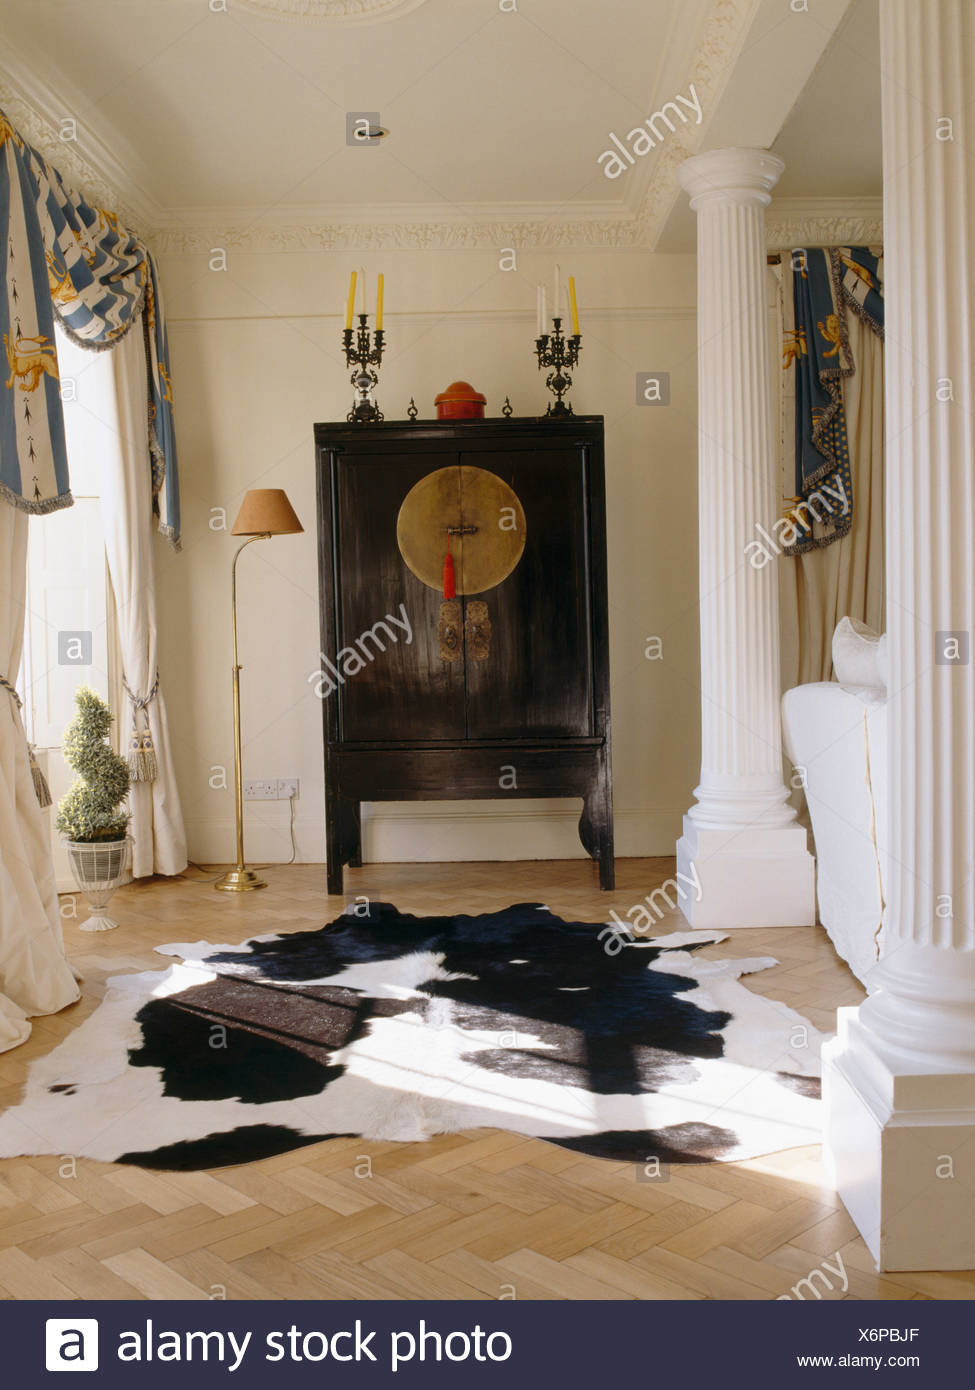 Cow-hide rug on parquet floor in country living room with ...